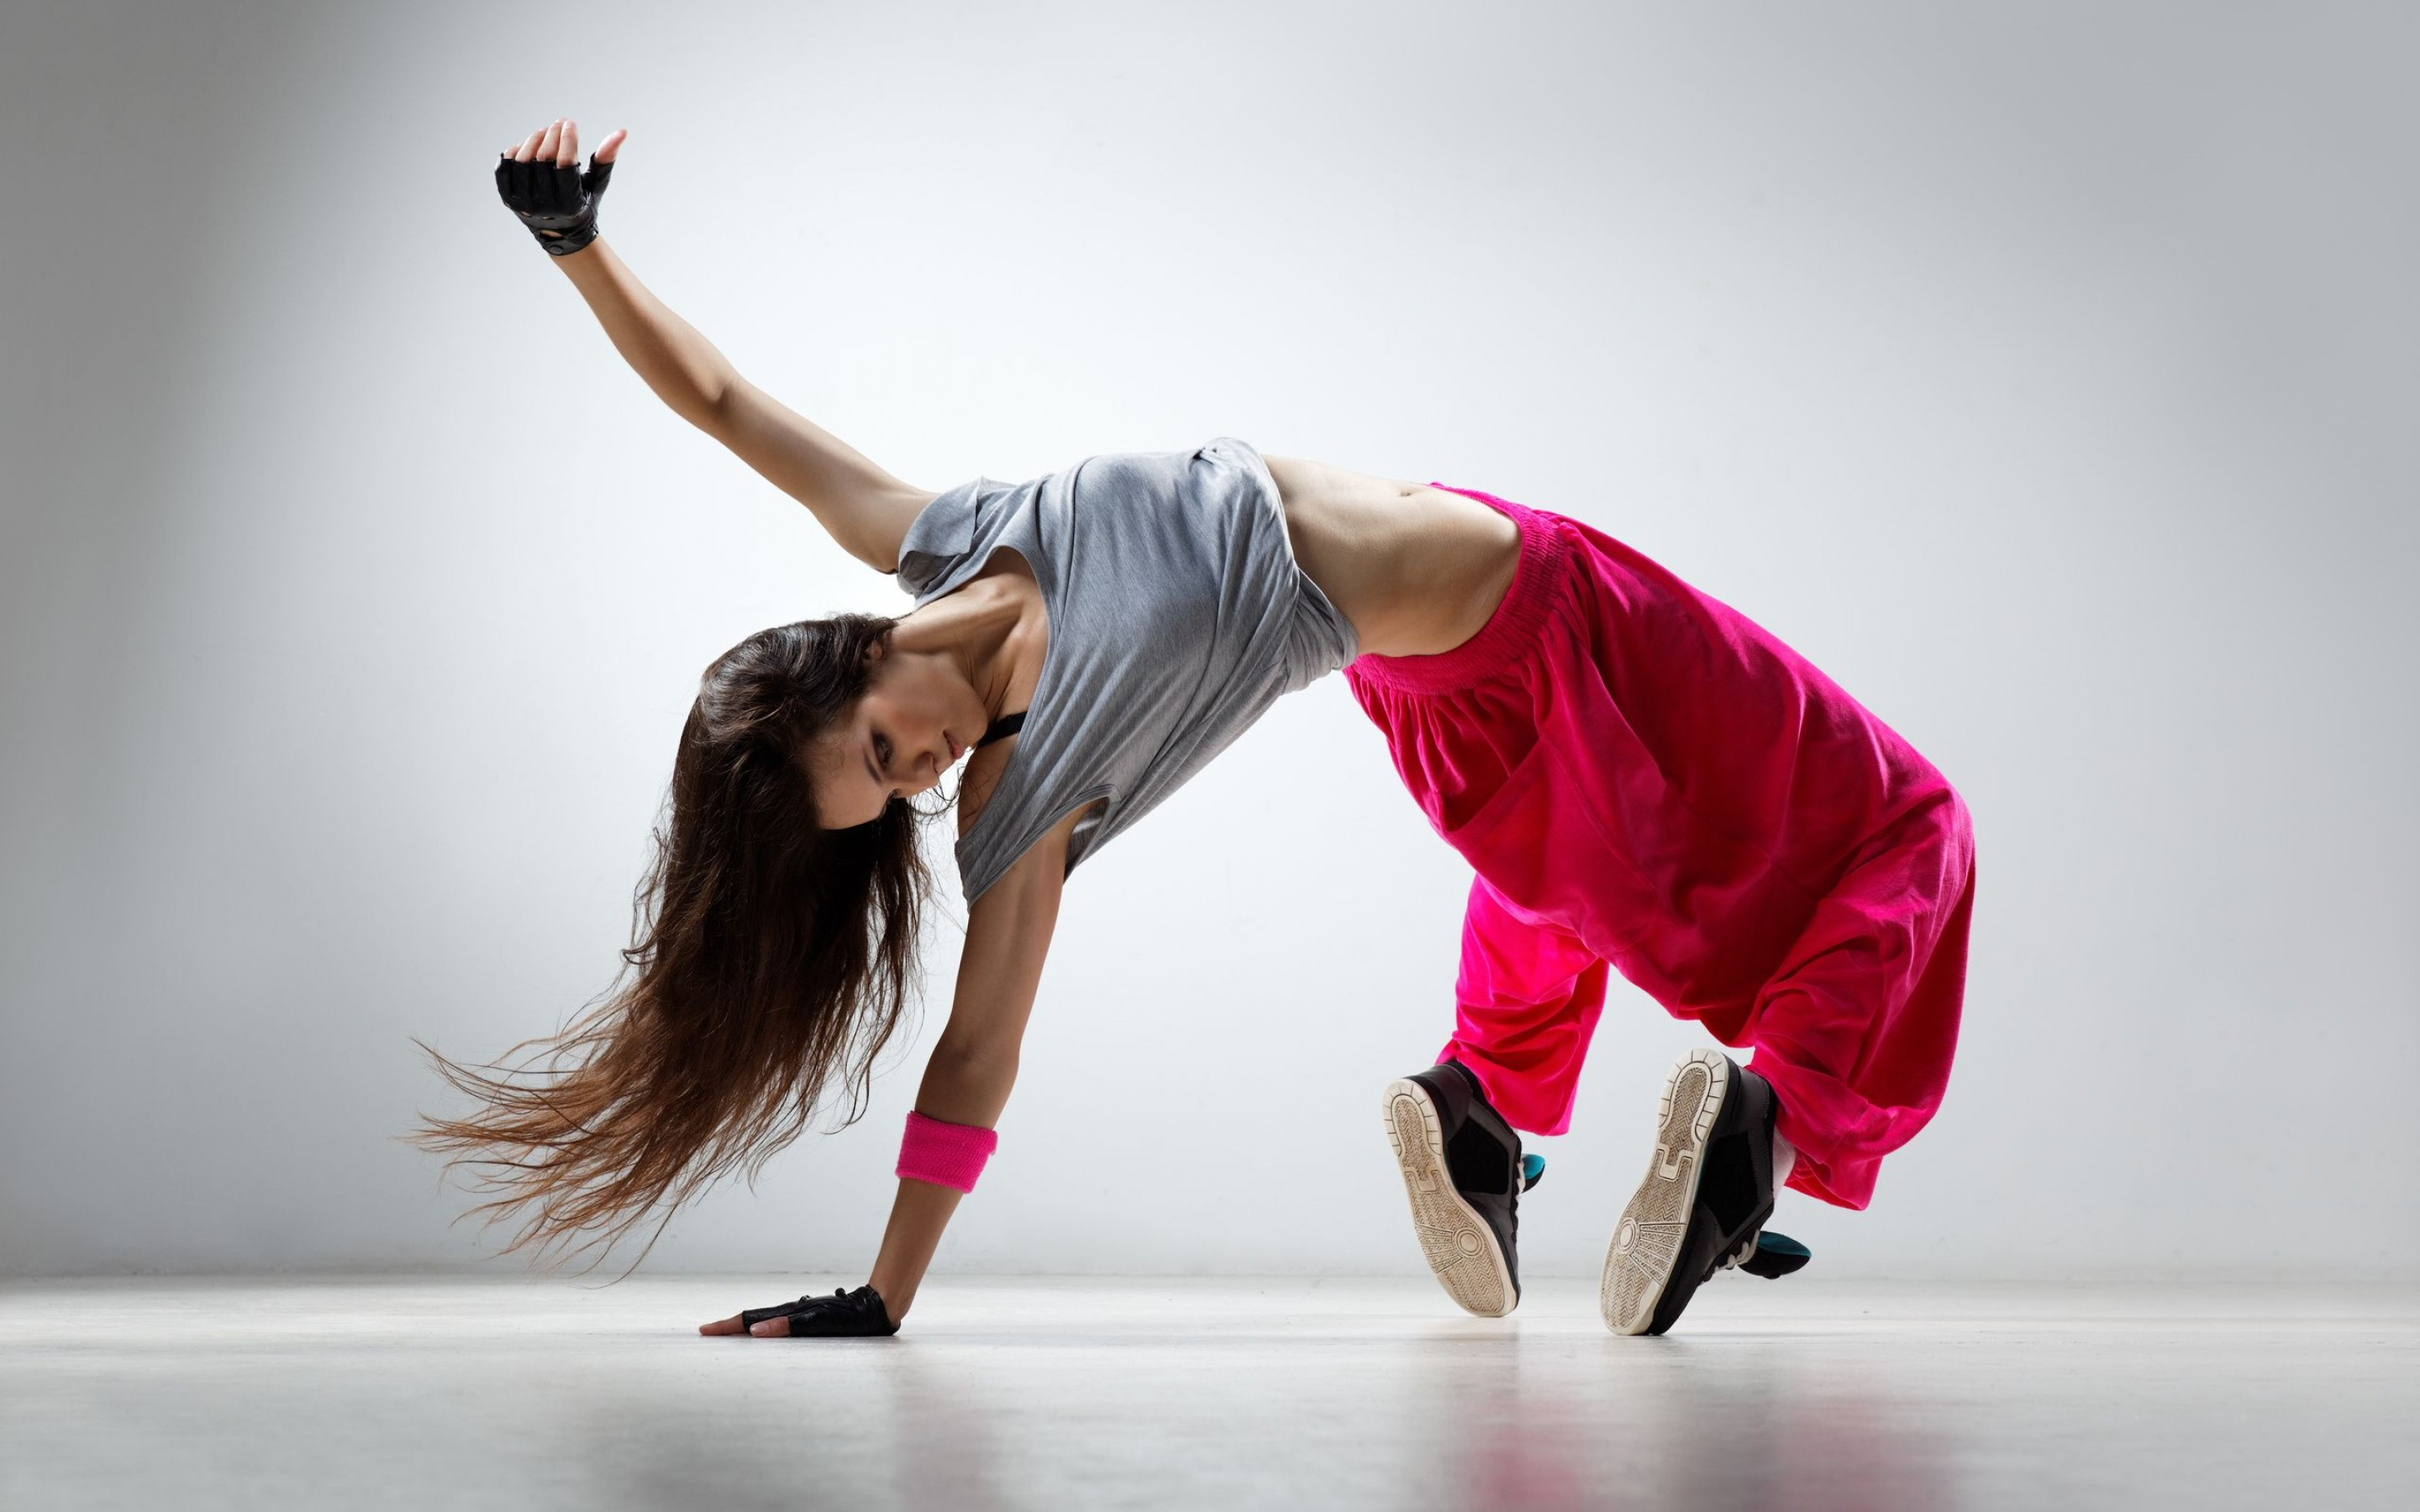 Hip hop dance by a girl hd desktop wallpaper widescreen backgrounds httpworldbuyersshopwp voltagebd Images